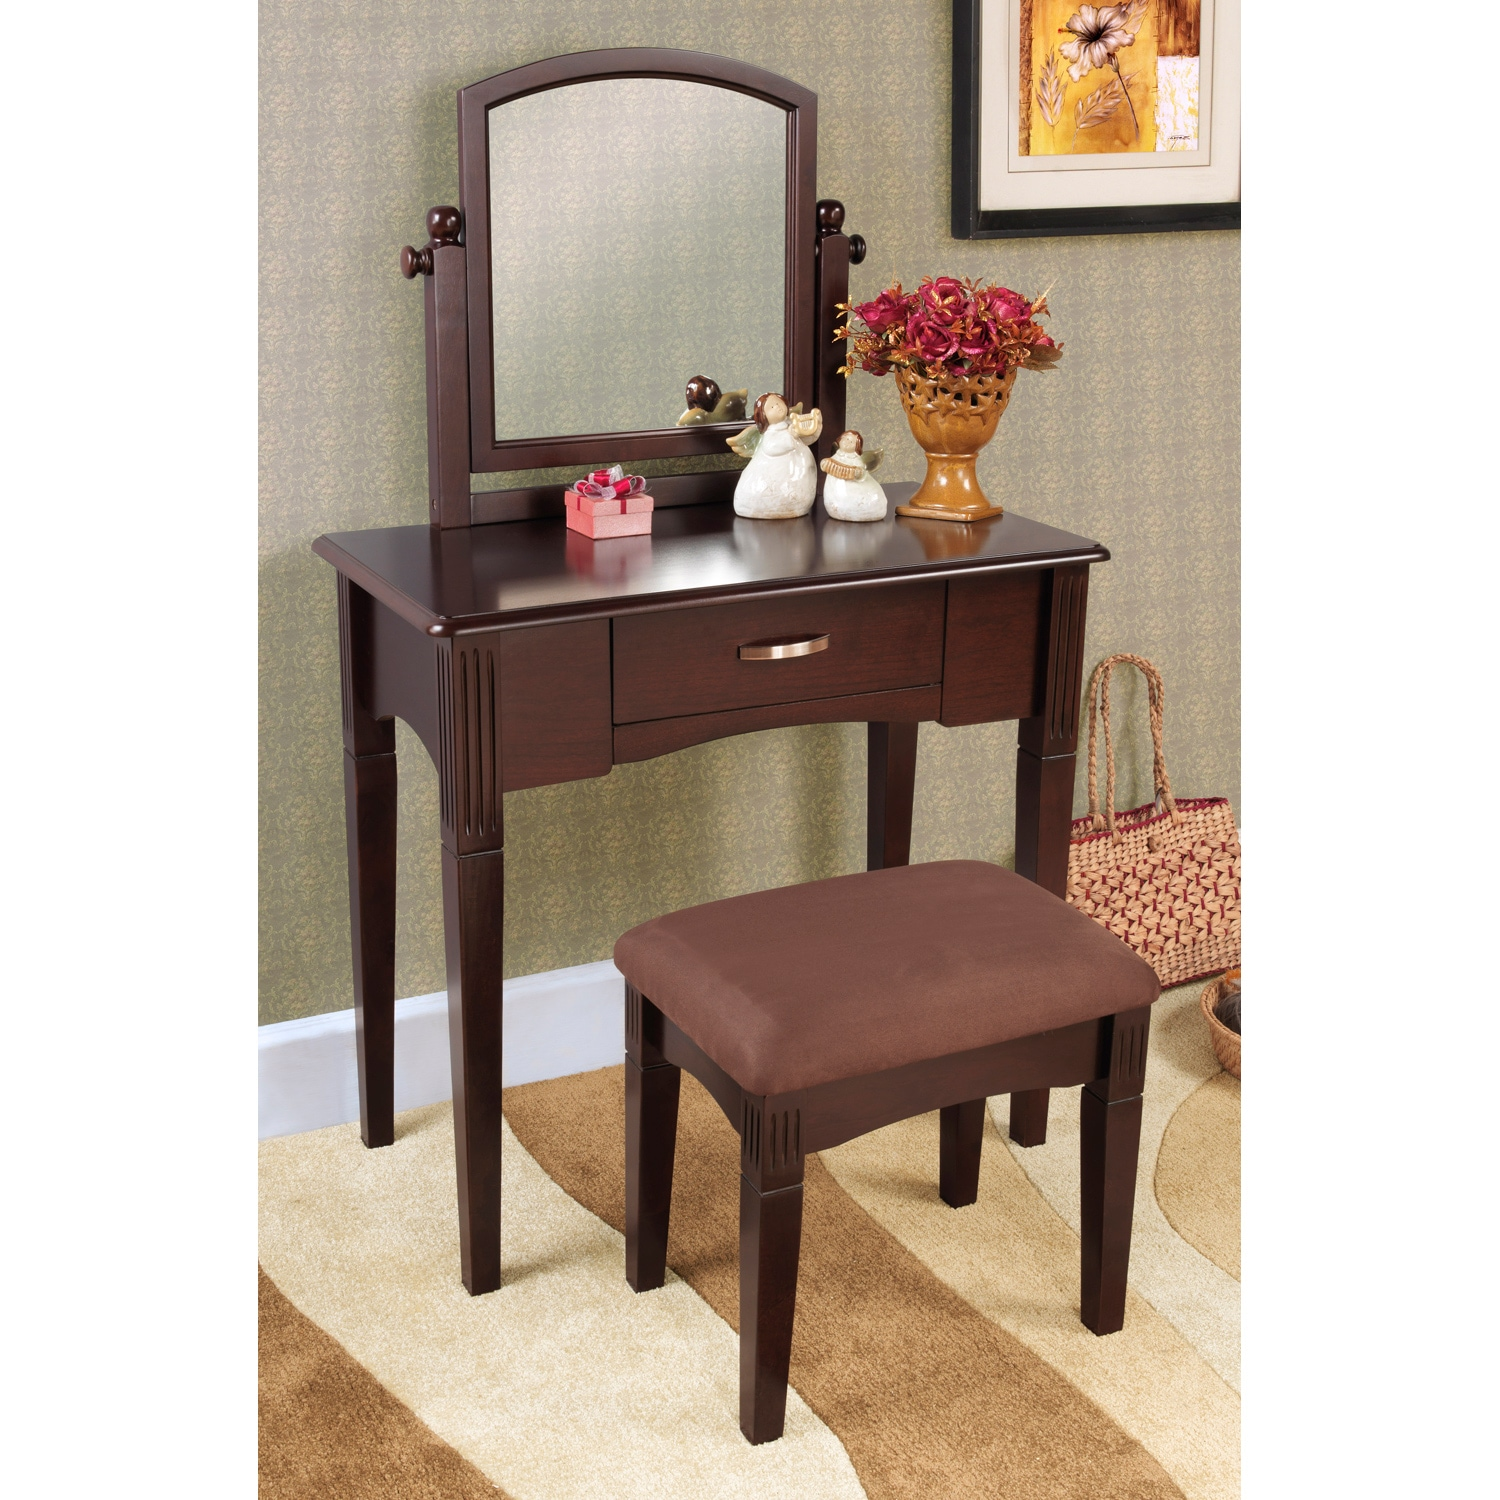 Espresso Finish Three Piece Vanity Set 14257751 Overstock Com Shopping The Best Prices On